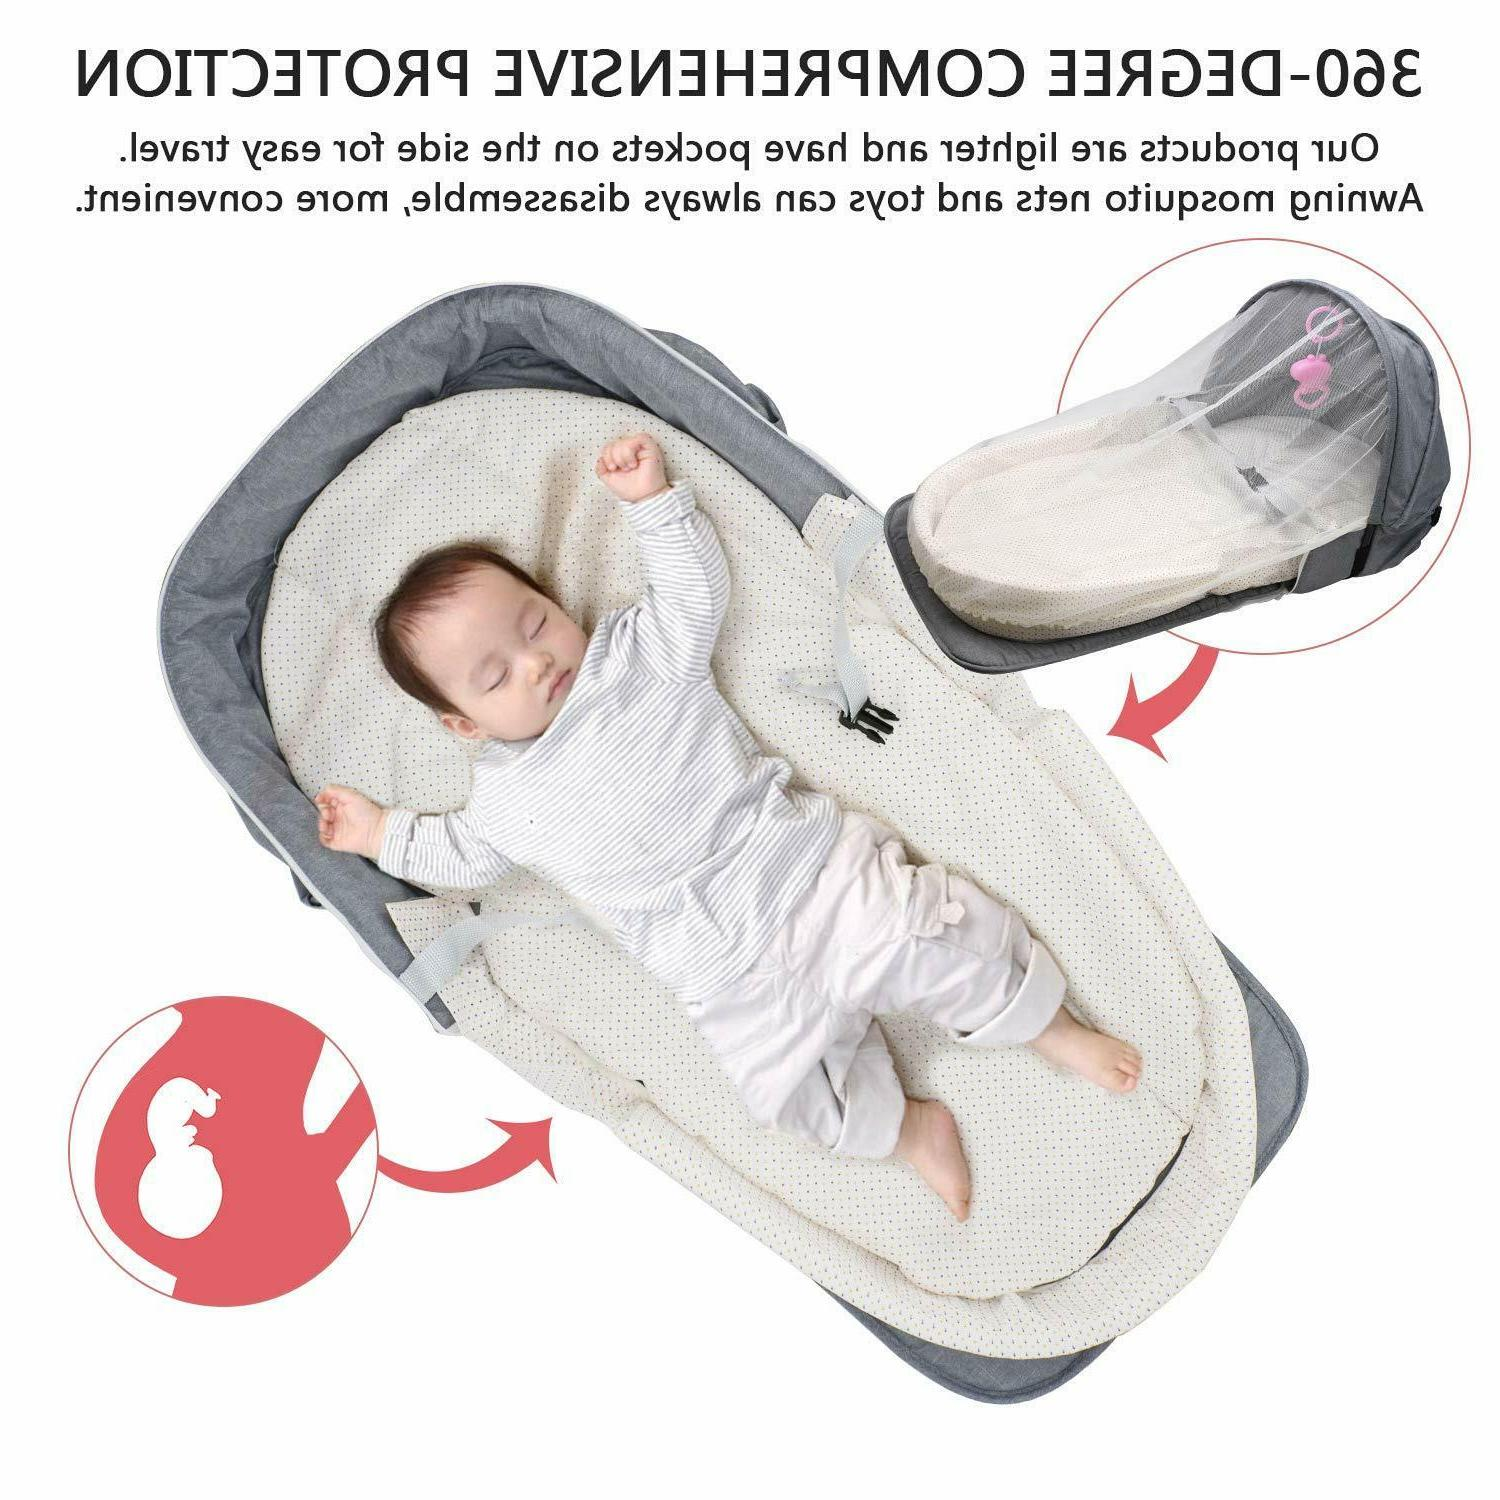 4 in 1 Portable Baby Bassinet Foldable Bed Infant Sleeper Tr